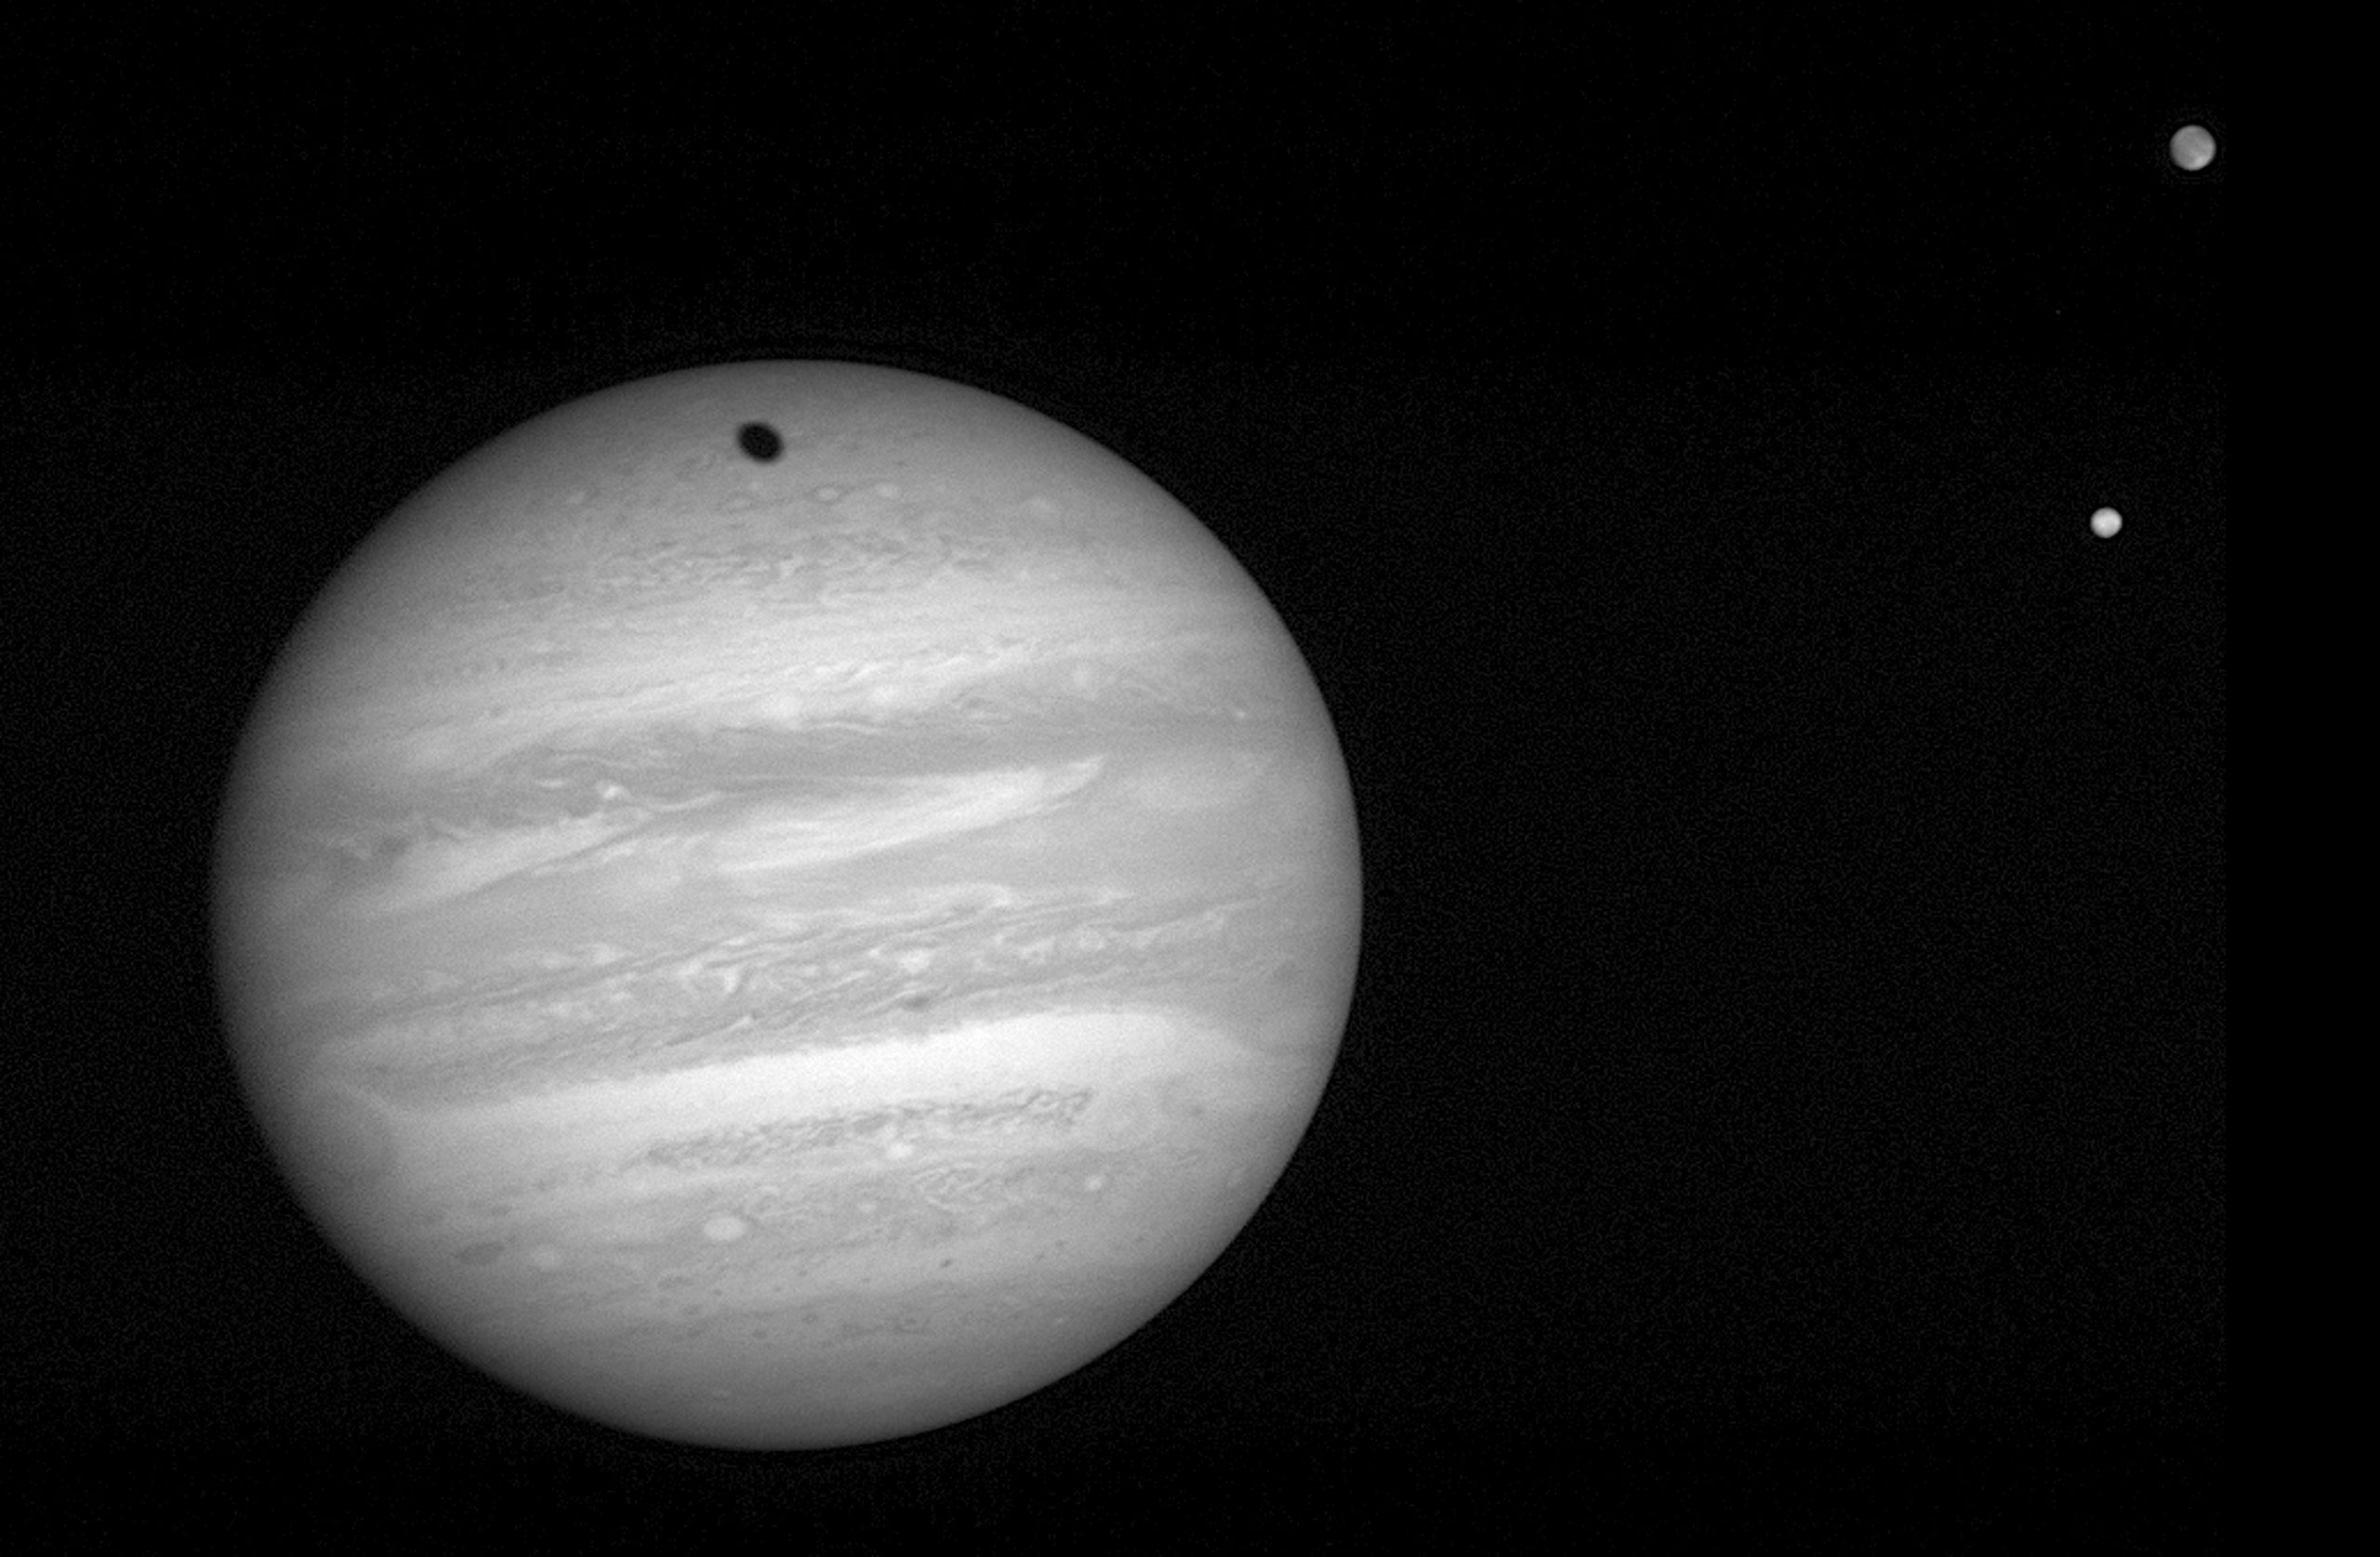 The New Horizons LORRI took this 2-millisecond exposure of Jupiter on Jan. 24, 2007. The spacecraft was 57 million kilometers (35.3 million miles) from Jupiter, closing in on the giant planet at 41,500 miles (66,790 kilometers) per hour. At right are the moons Io (bottom) and Ganymede; Ganymede's shadow creeps toward the top of Jupiter's northern hemisphere.